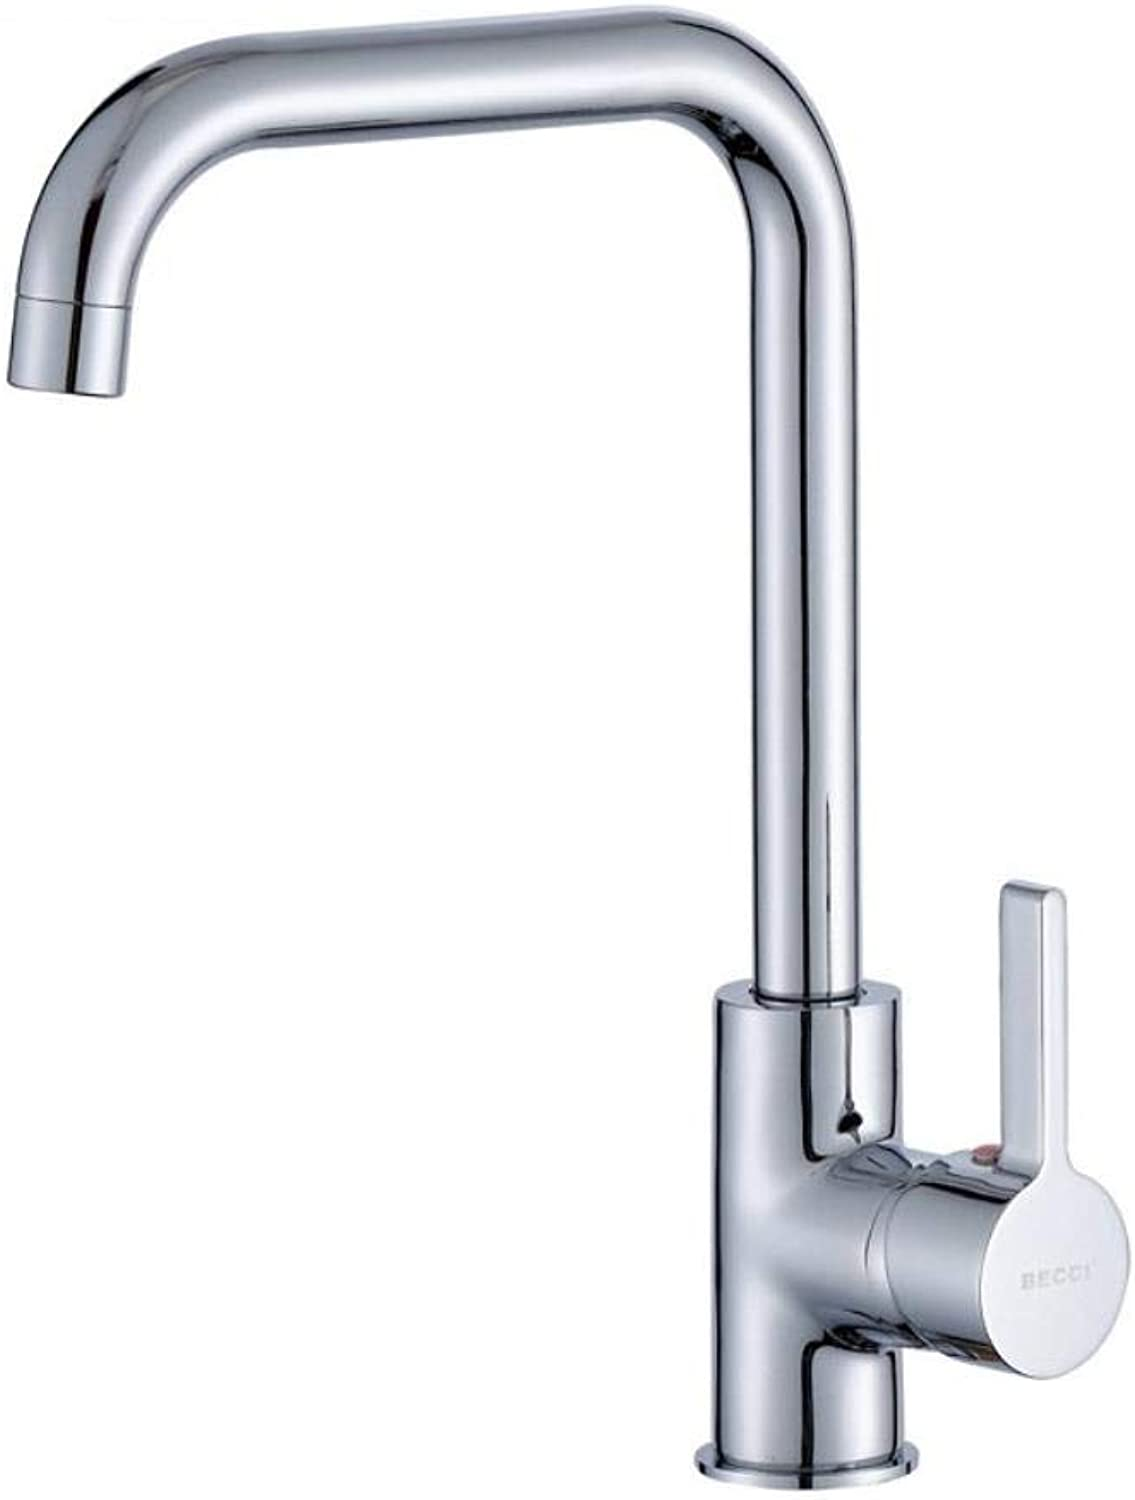 Alloy Kitchen Sink Hot and Cold Water Faucet Z1049